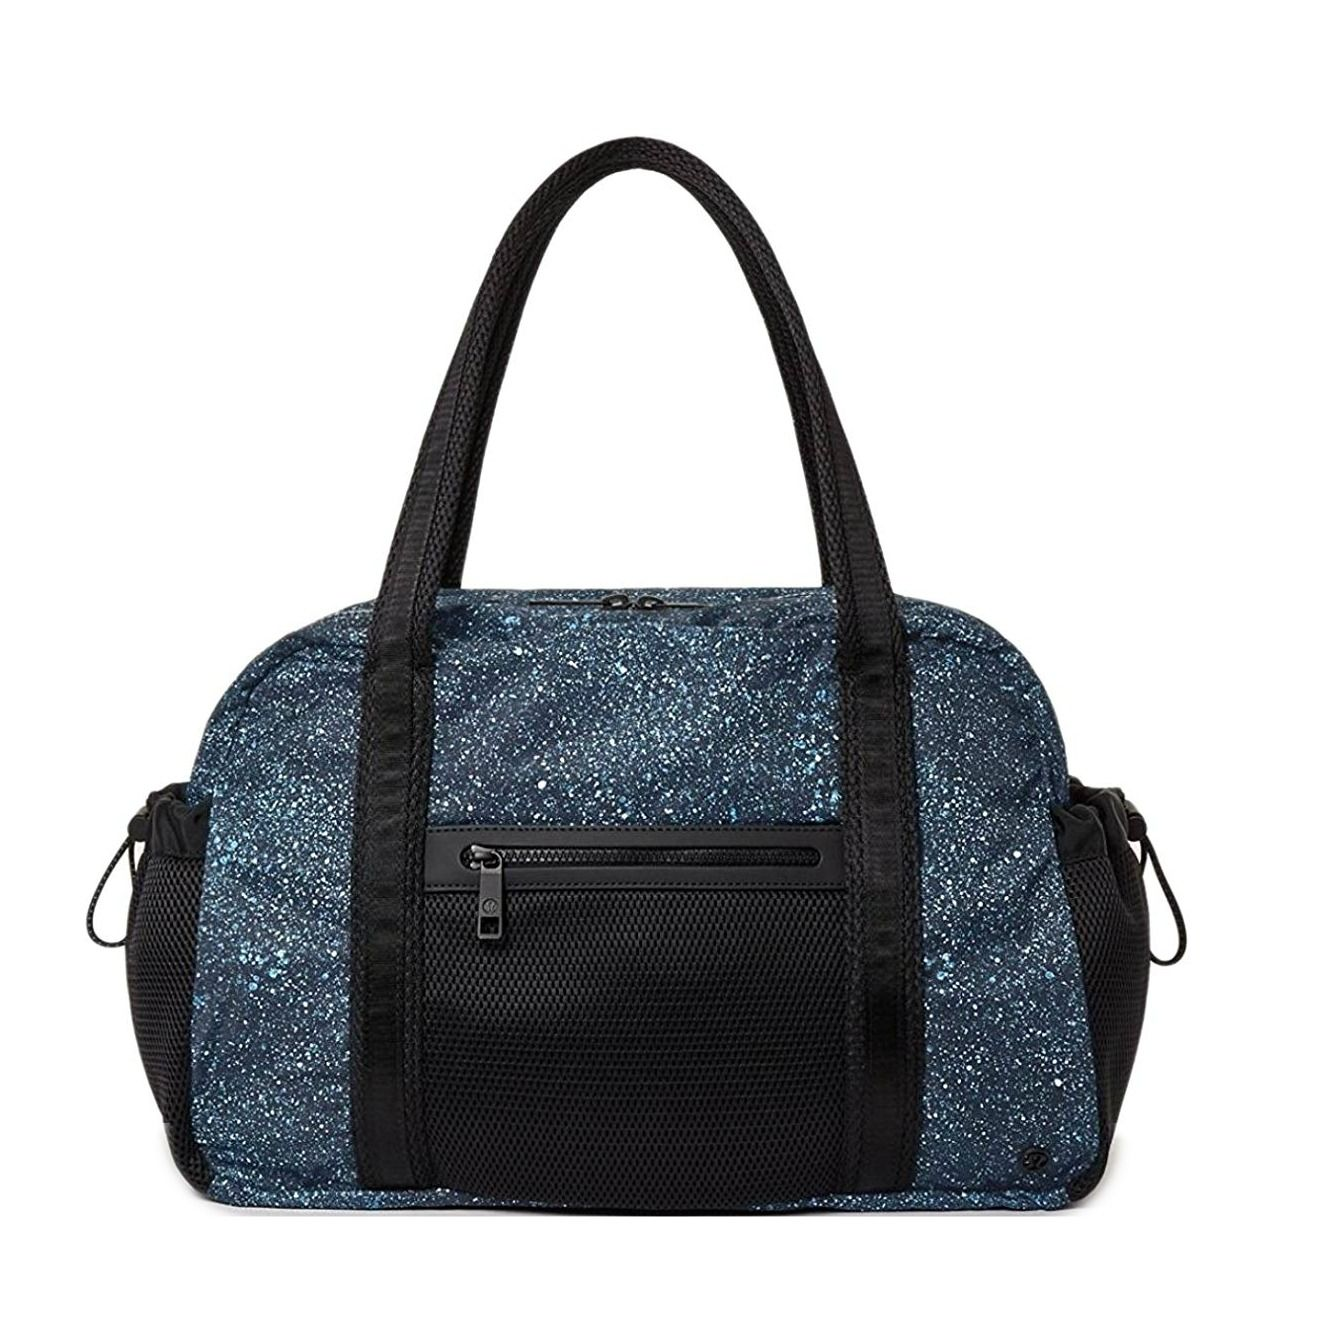 lululemon glitter gym bag for women